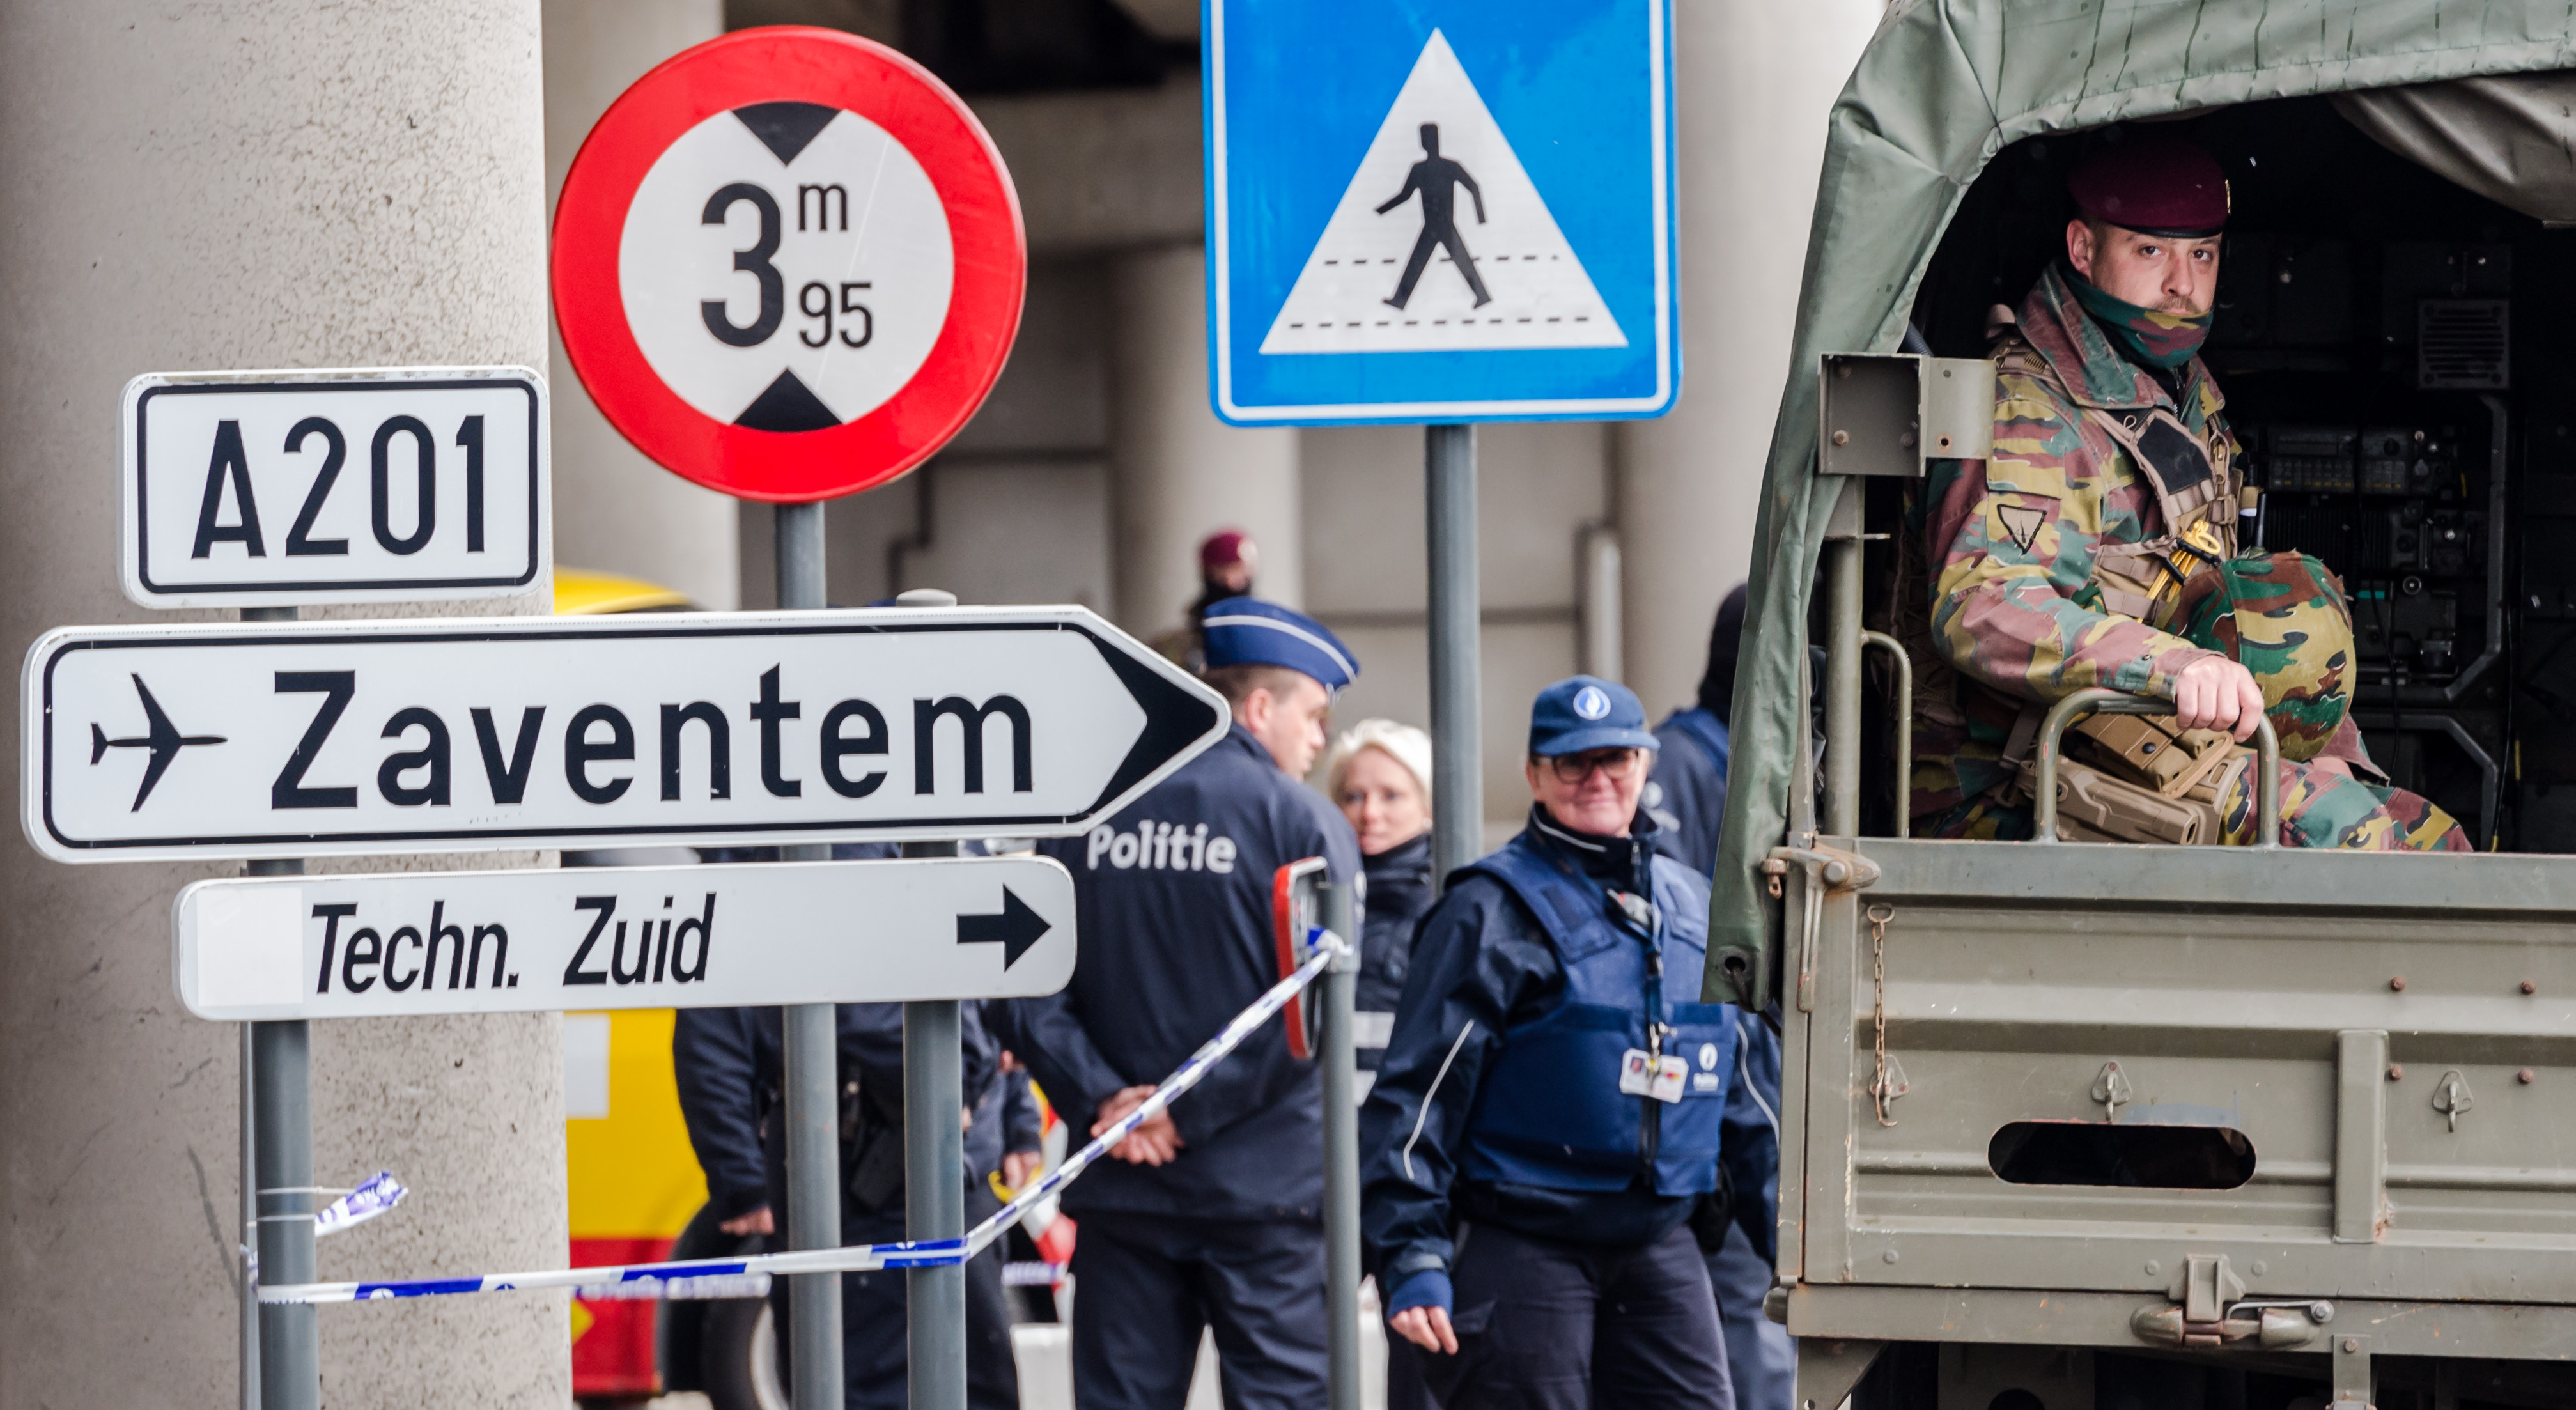 Belgian police and soldiers secure the area outside Zaventem Airport in Brussels, on March 29, 2016.